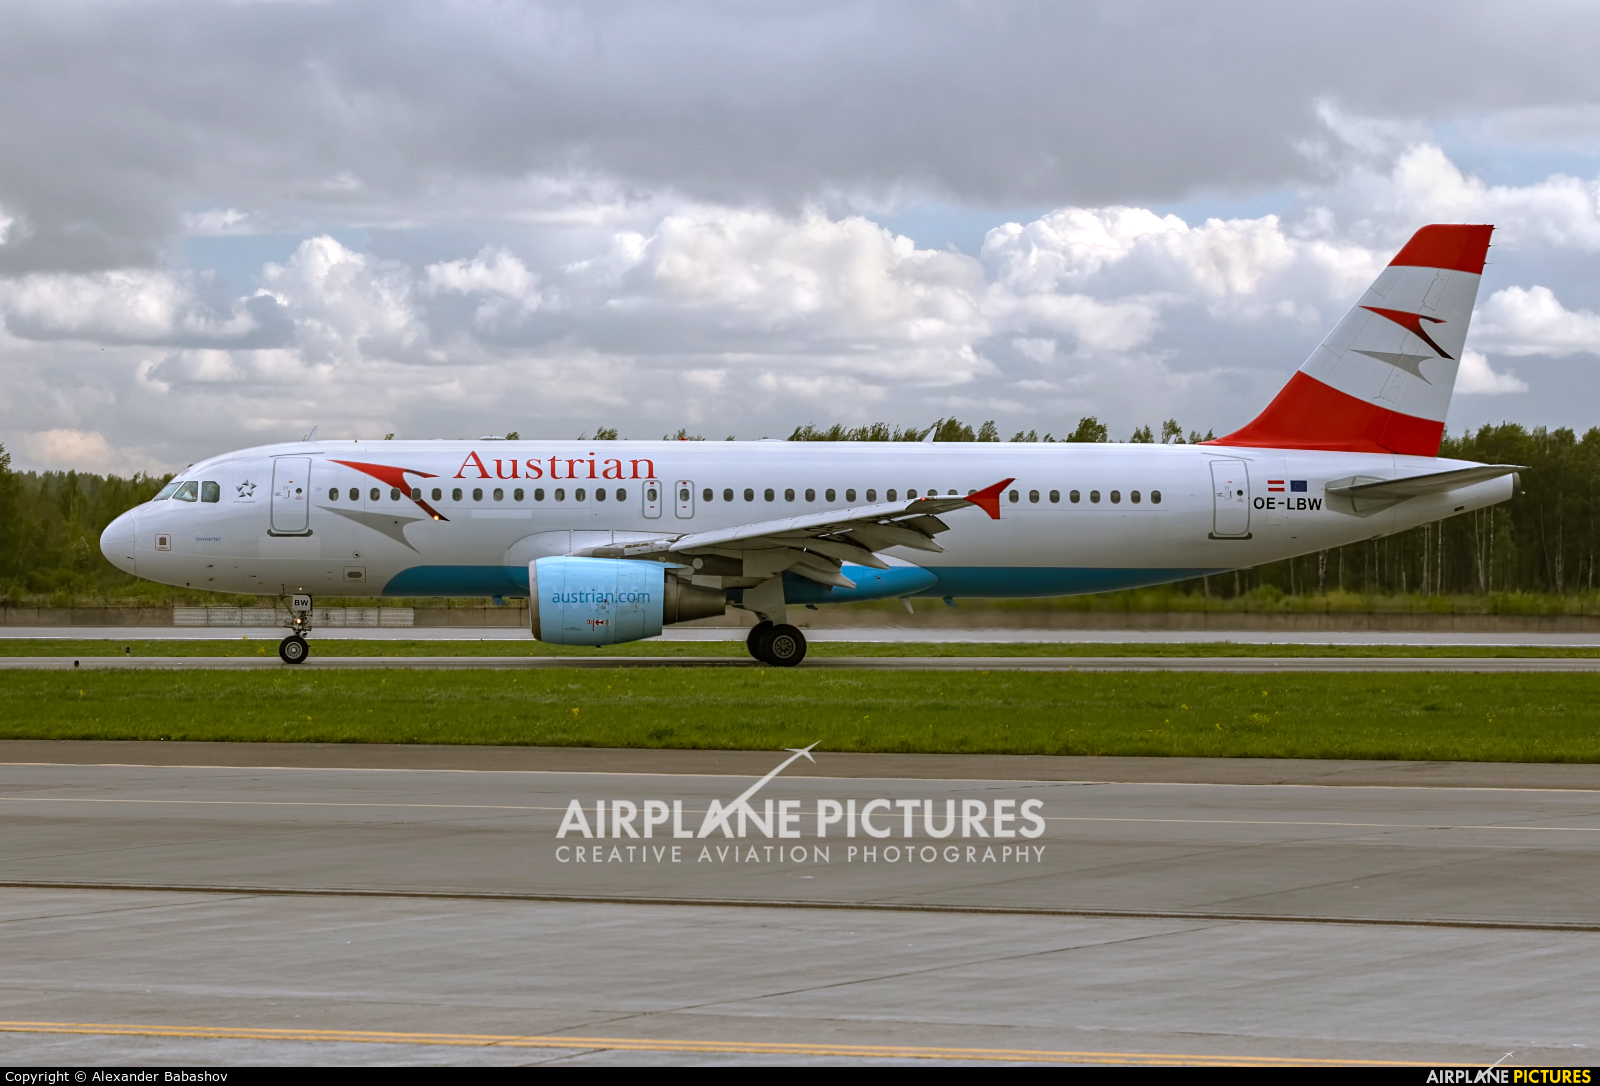 Austrian Airlines/Arrows/Tyrolean Airbus A320 OE-LBW